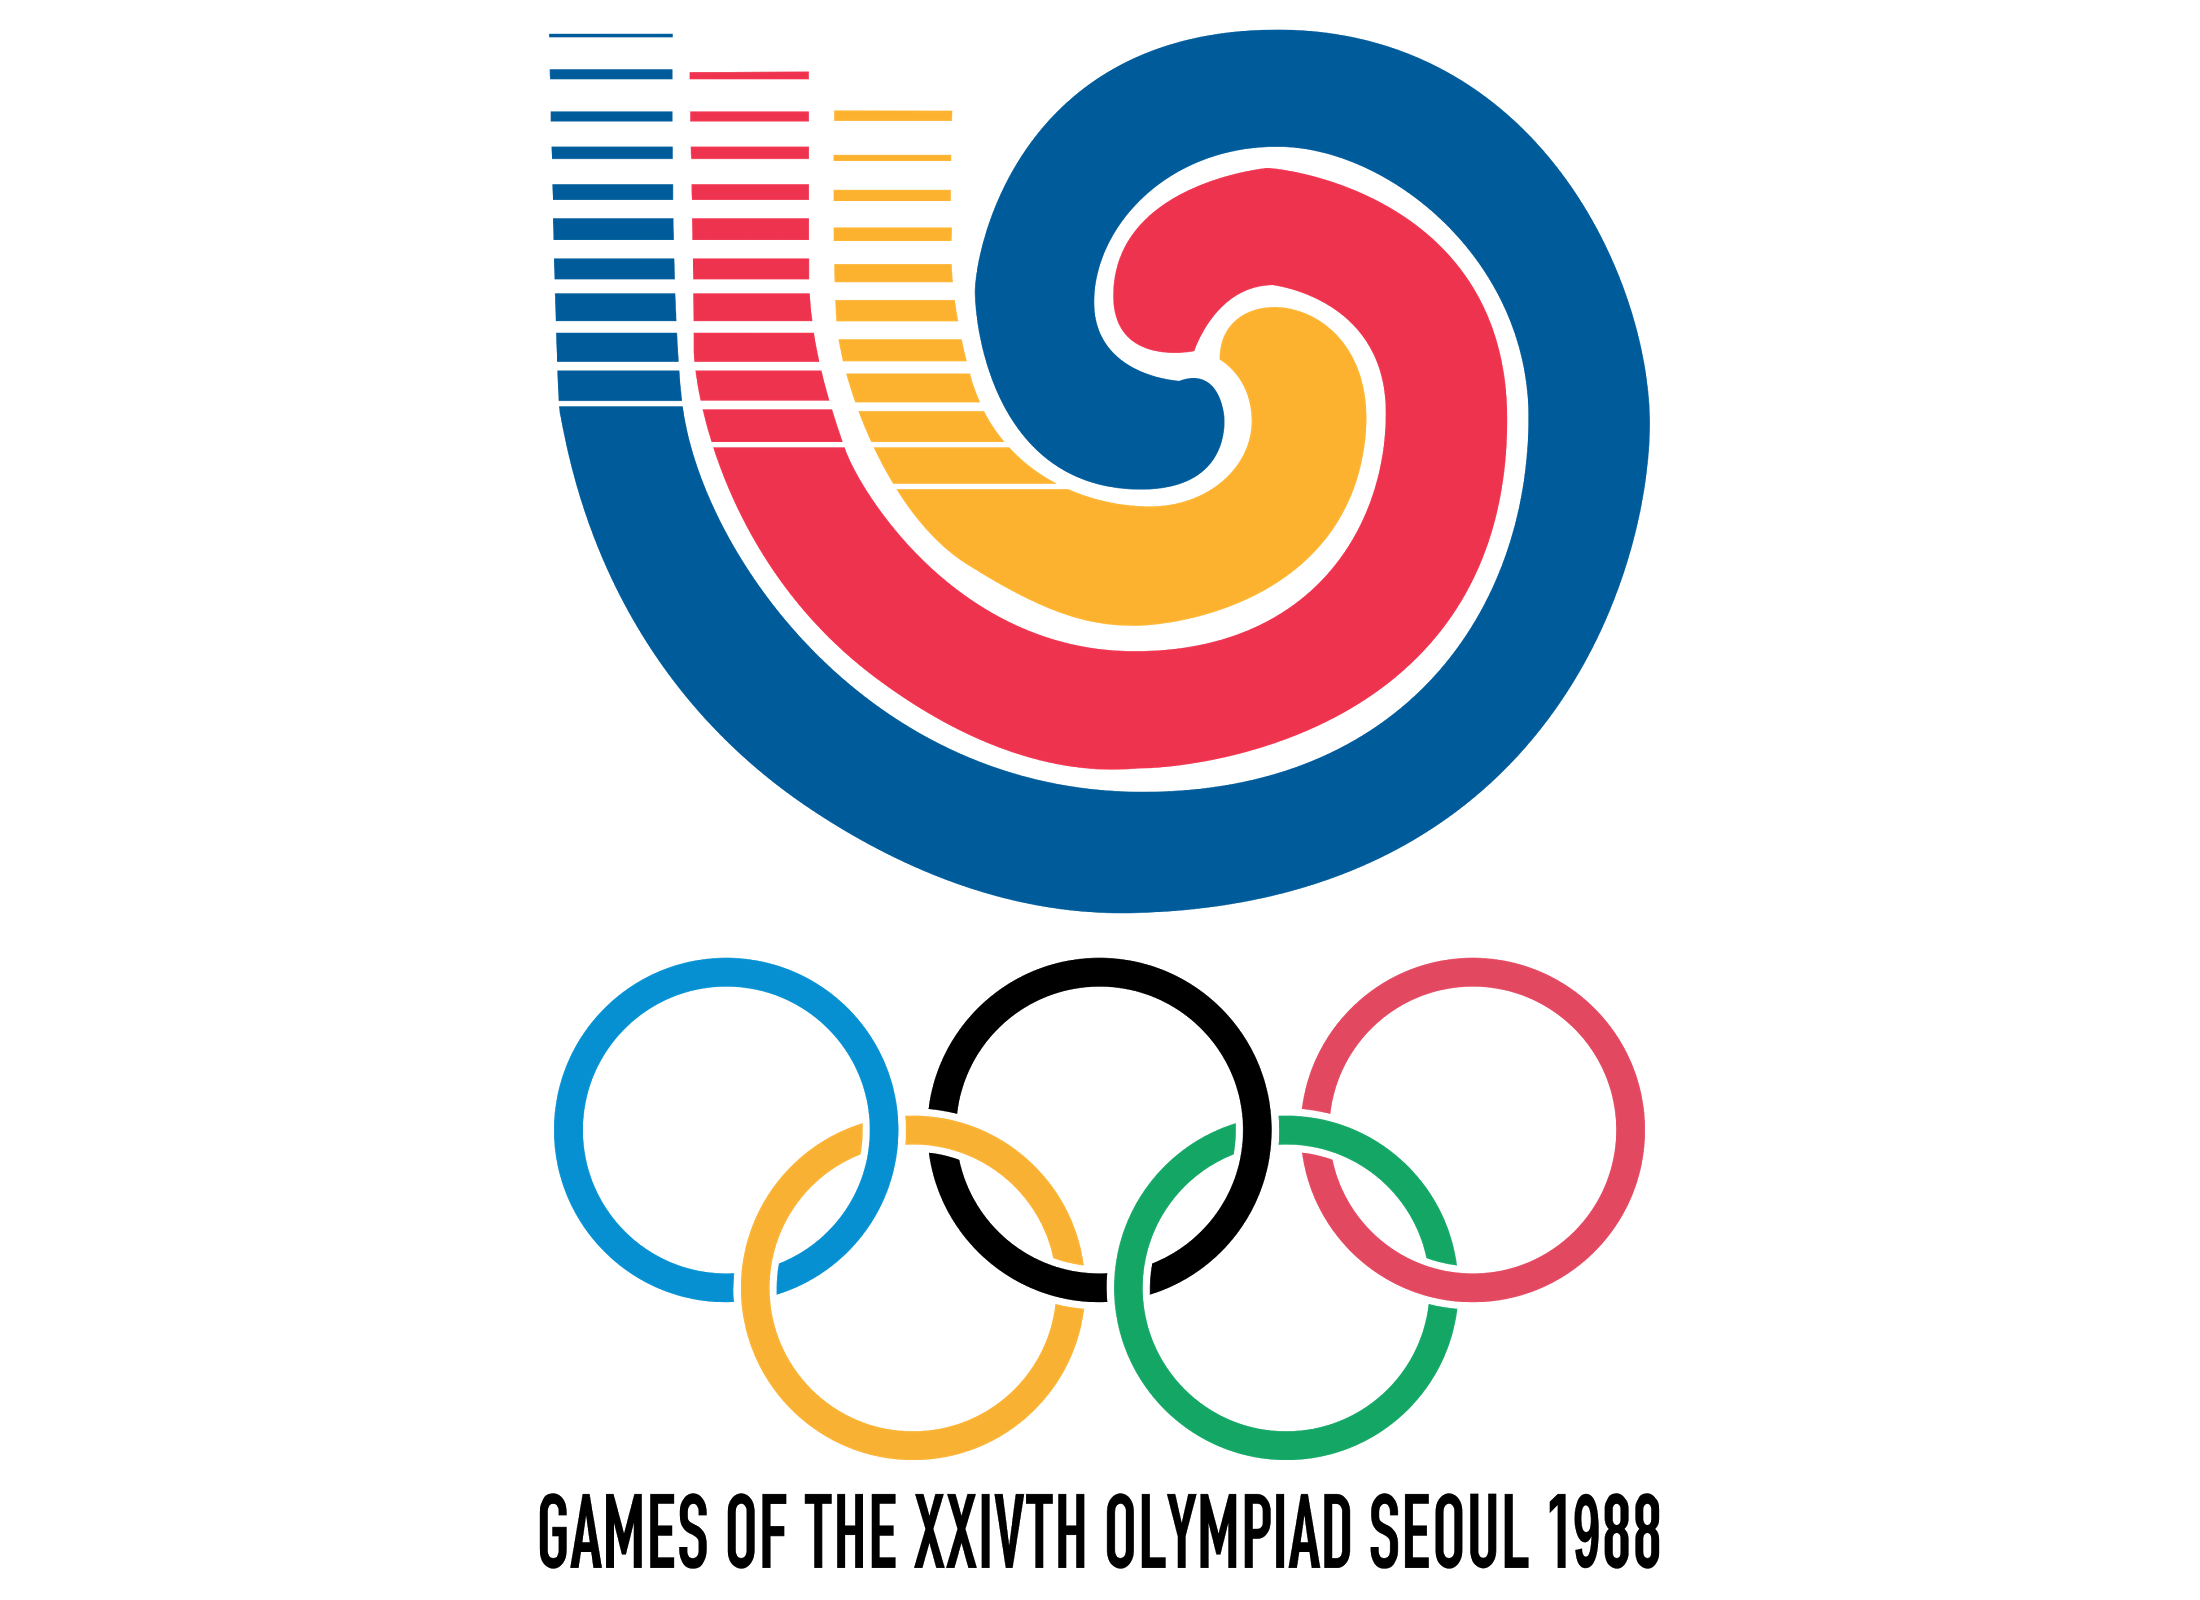 45 olympic logos and symbols from 1924 to 2022 colorlib seoul summer olympics 1988 biocorpaavc Images